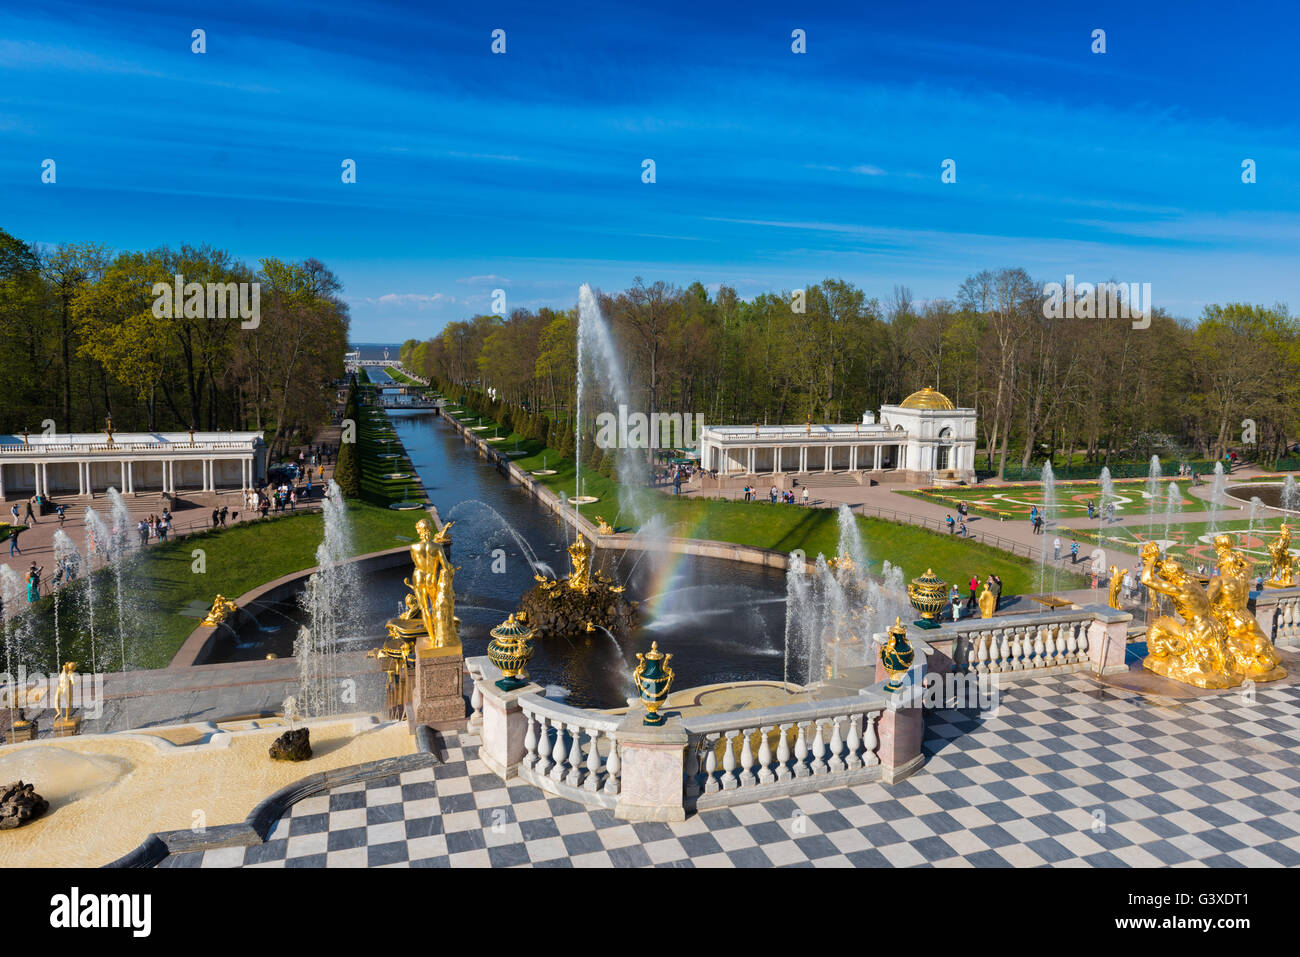 Samson Fountain And Sculptures of The Grand Cascade In Peterhof, Saint Petersburg - Stock Image